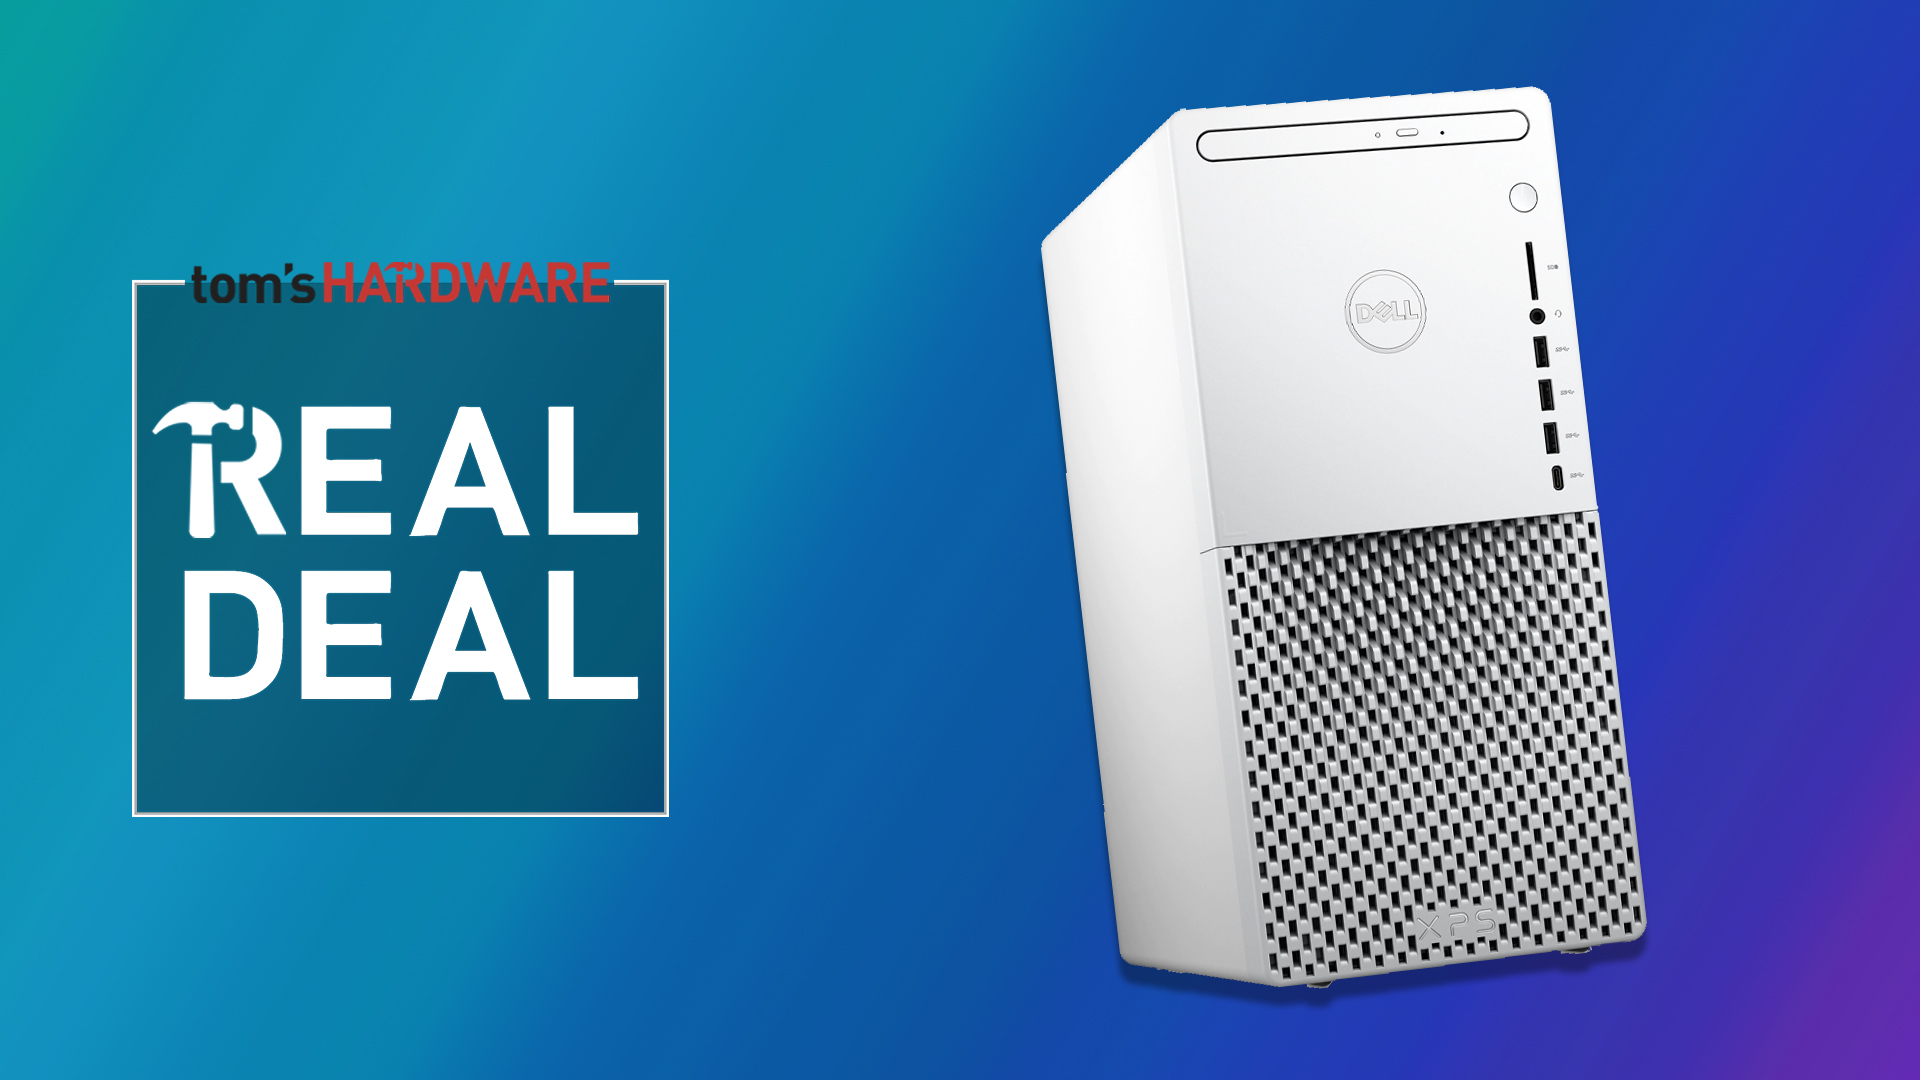 Get nearly $500 off this Dell XPS Desktop with RTX 3070 graphics